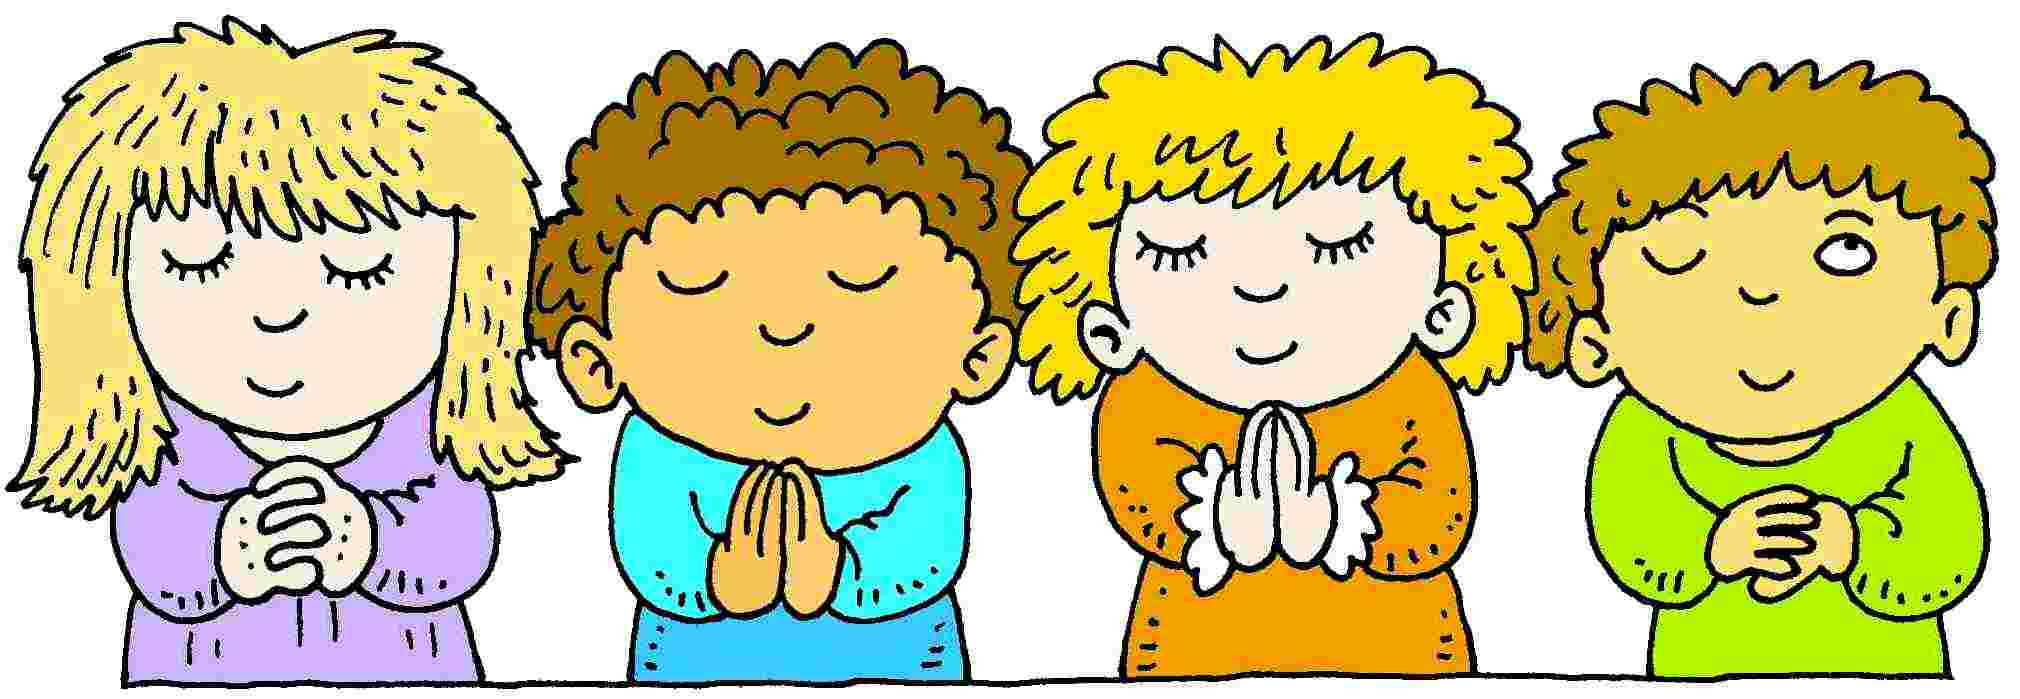 Pray Clipart Images Pictures | Clipart Panda - Free Clipart Images